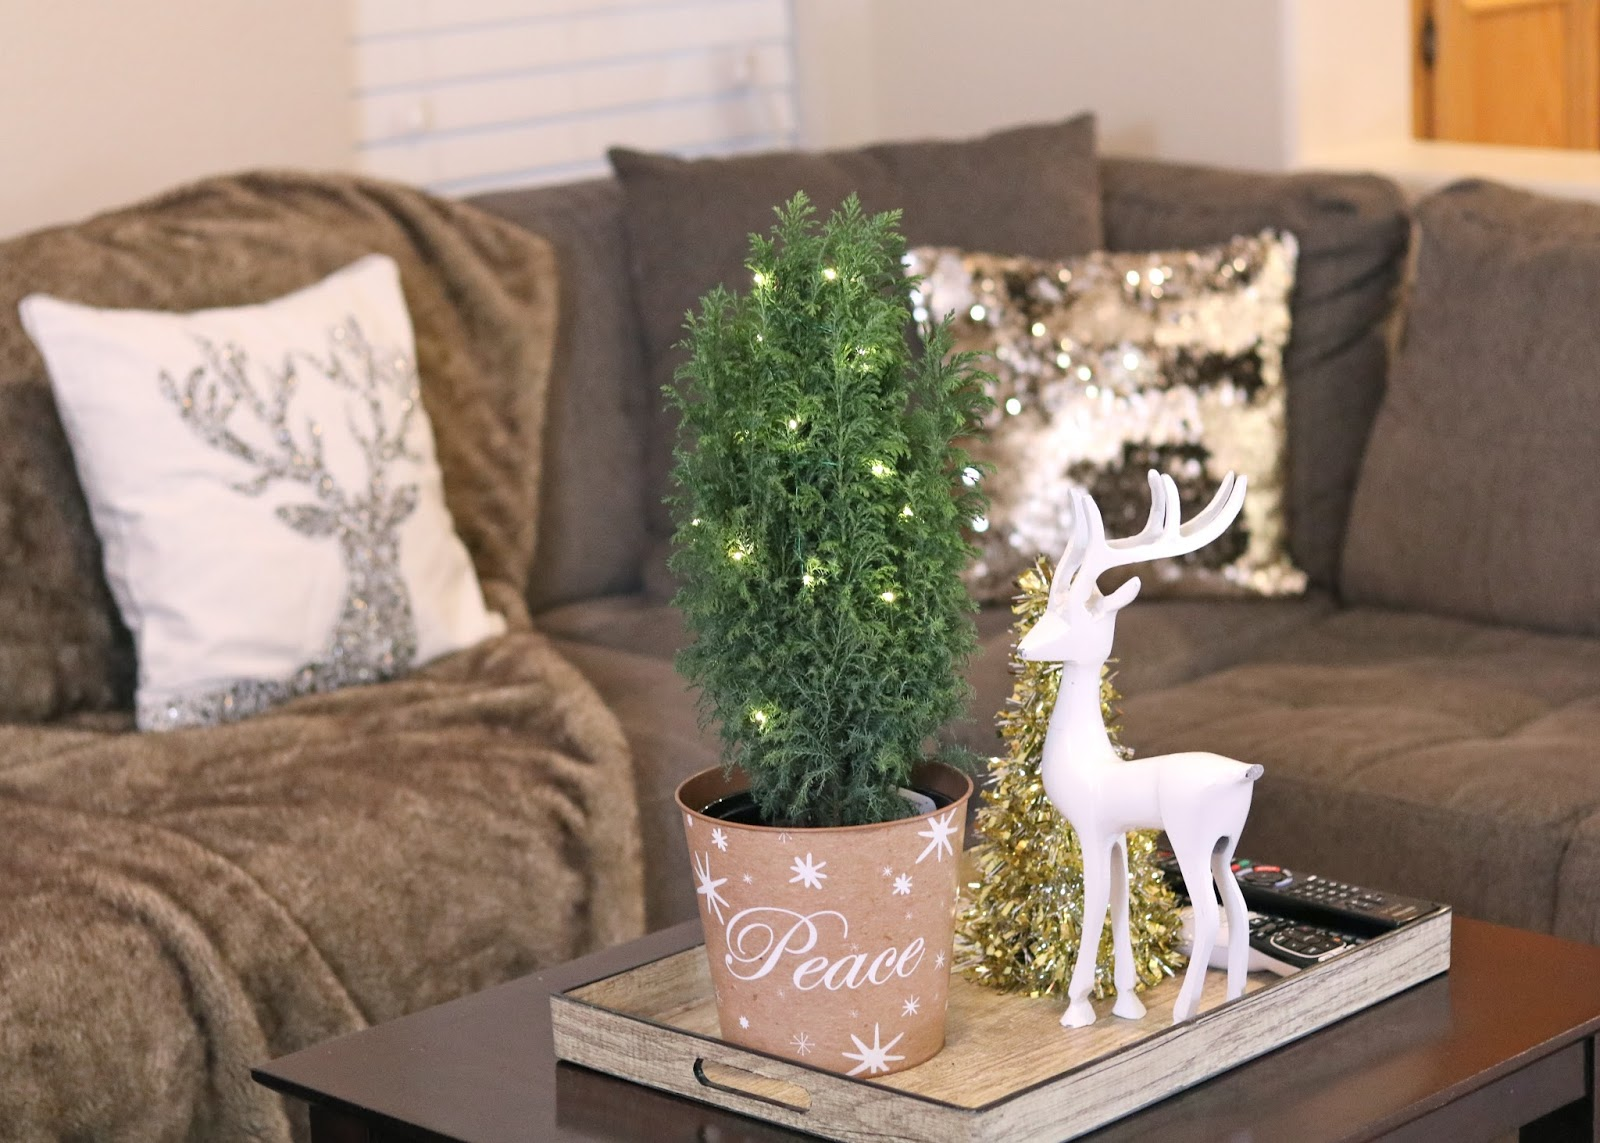 proflowers lit mini tree, white reindeer from marshalls, sparkly reindeer pillow